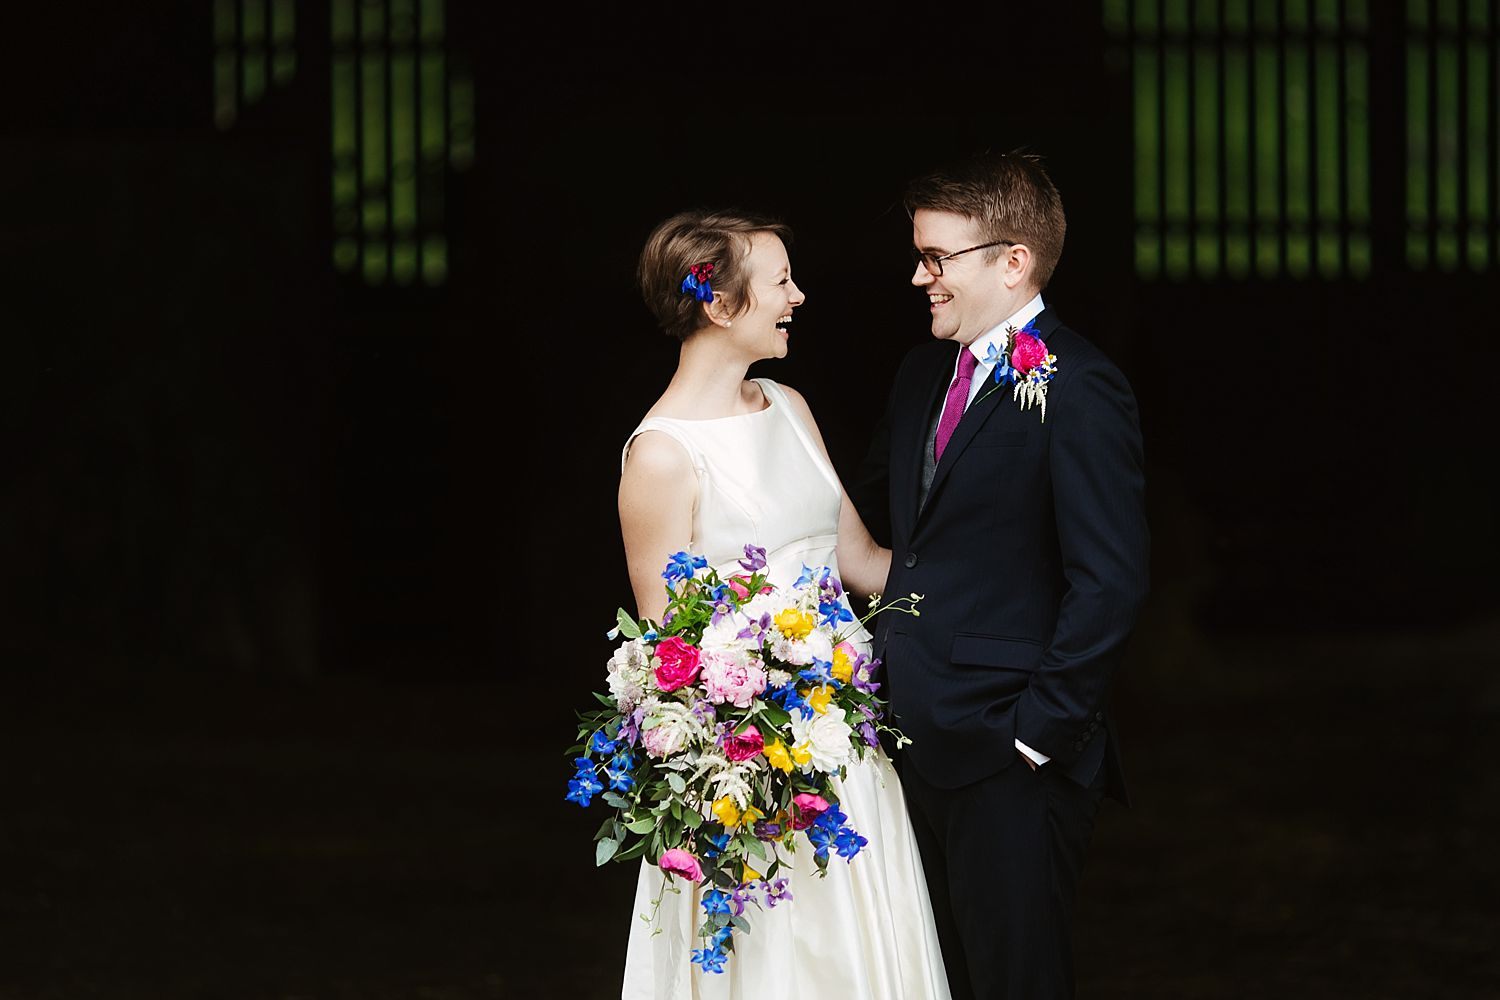 Bride and groom laughing together outside wedding reception venue, Park House Barn. Floristry by Carmen